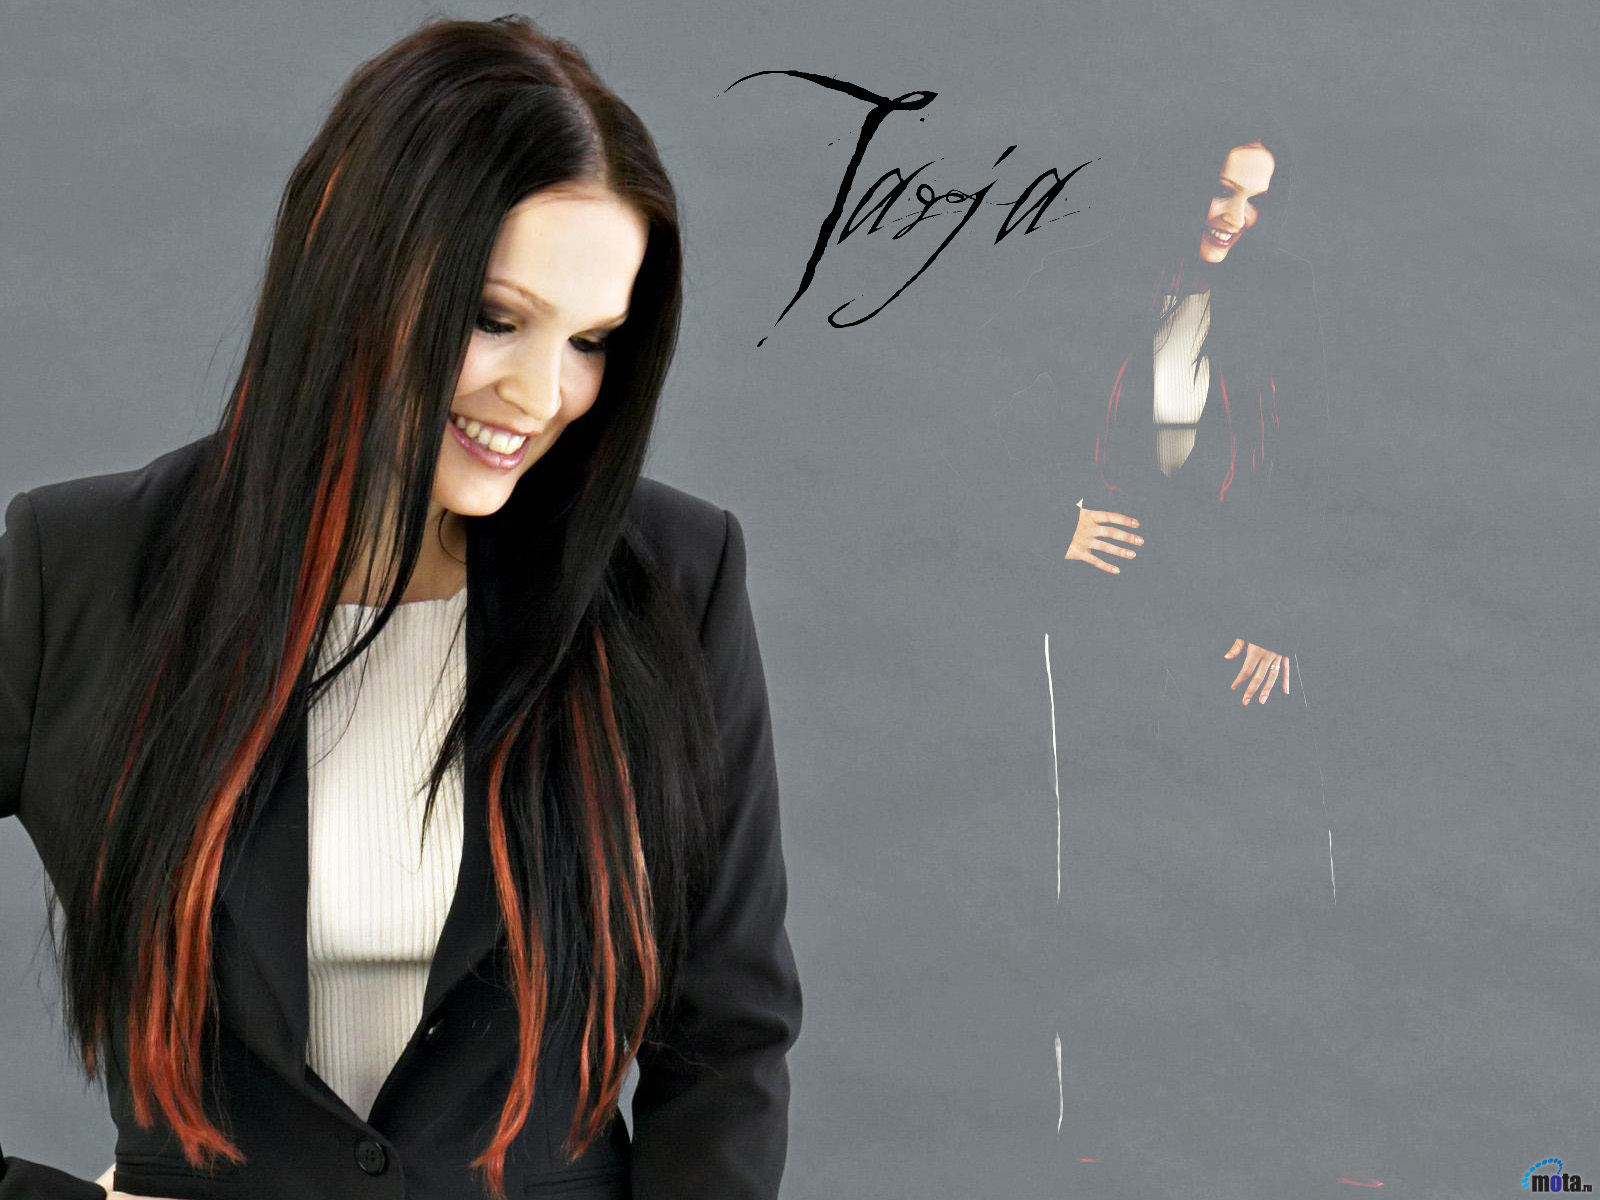 tarja turunen wallpaper - photo #20